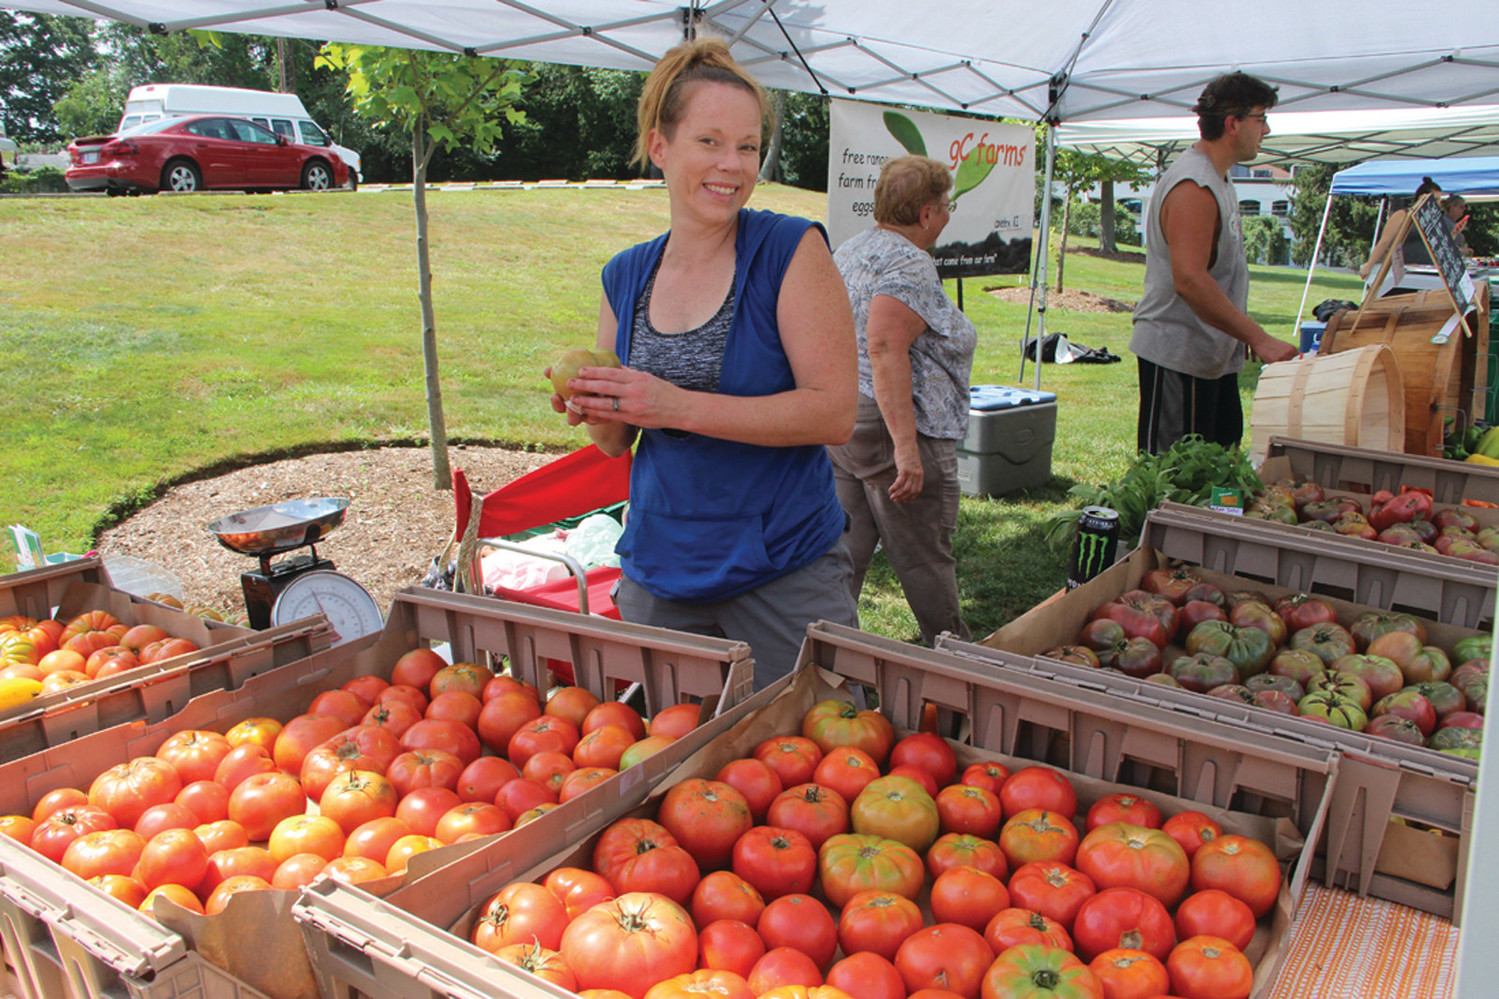 POLISHED TOMATOES: Gwen Mezak displays freshly picked tomatoes offered by gC Farms at the Pawtuxet Farmer's Market at Rhodes Place.